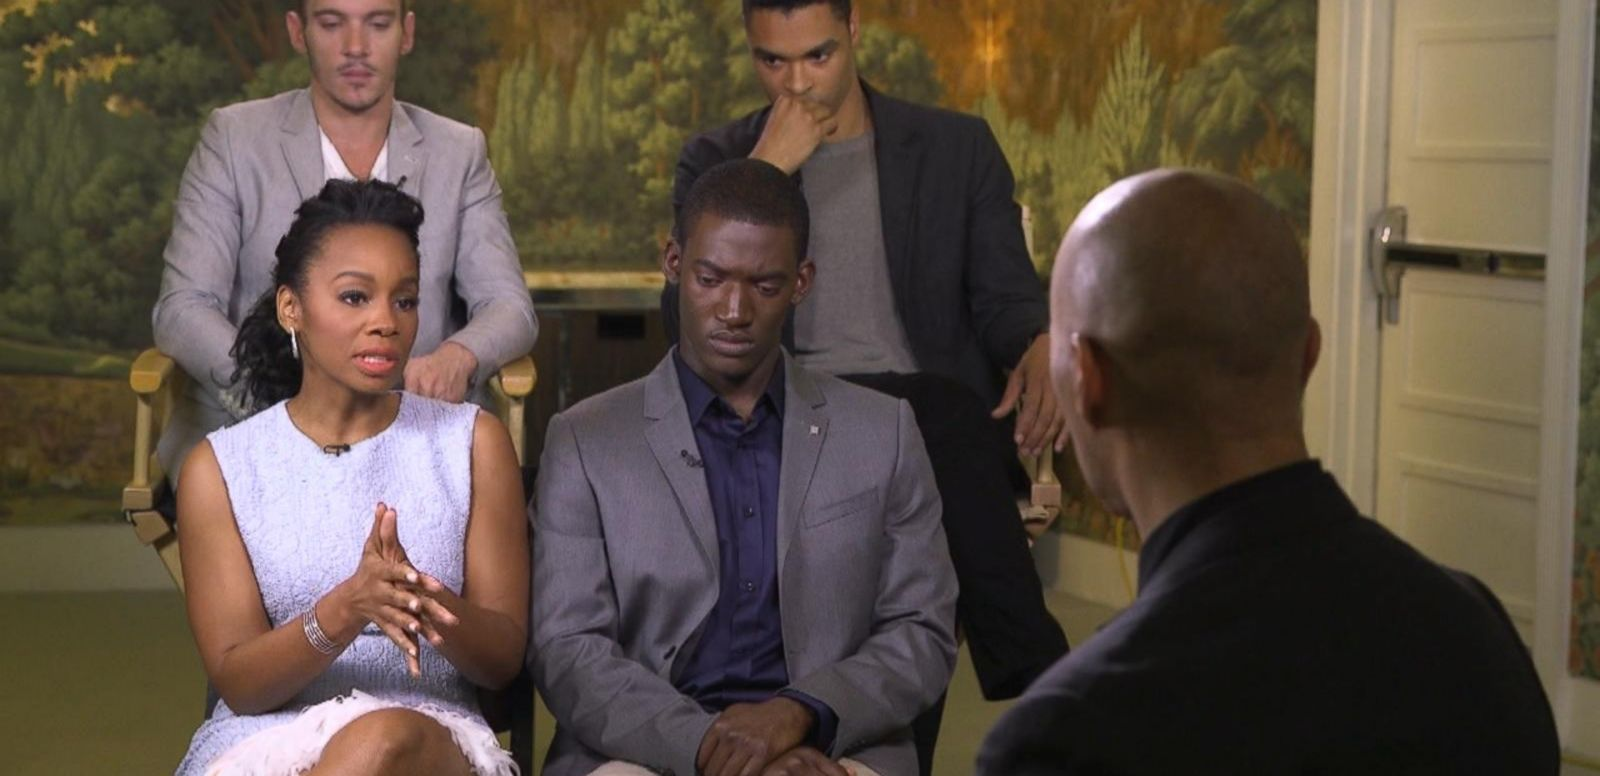 VIDEO: 'Roots' Cast Opens Up About Remaking Classic Miniseries